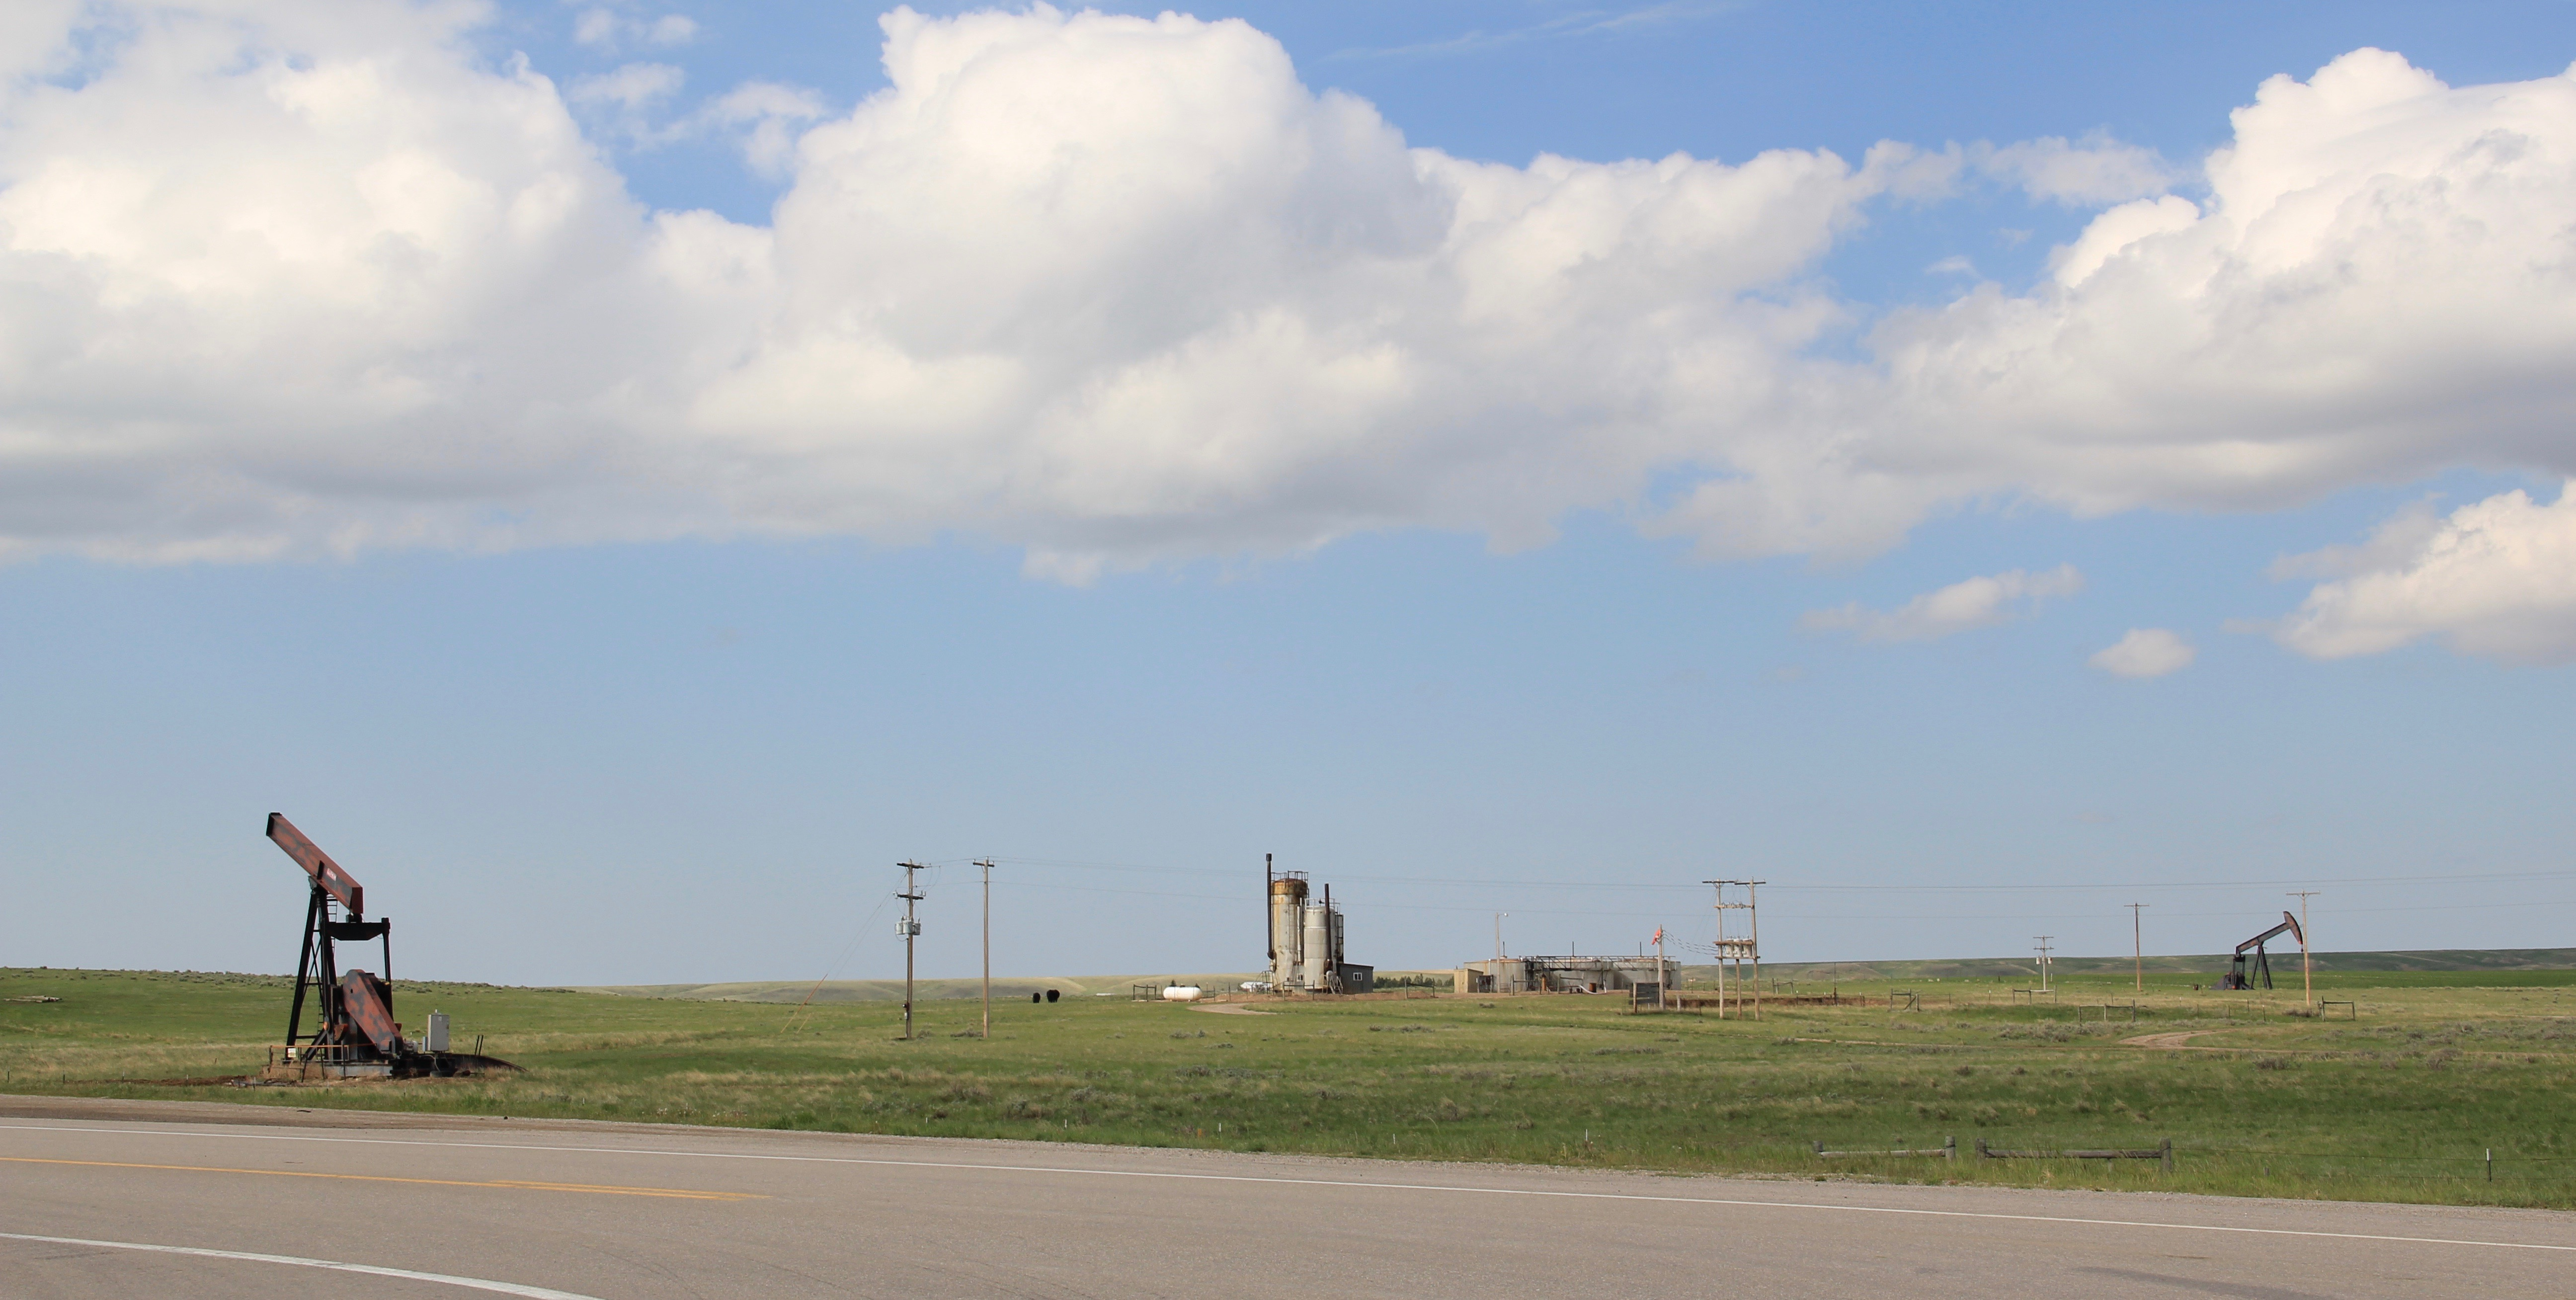 Musselshell Co US 87 oil wells at MT 244